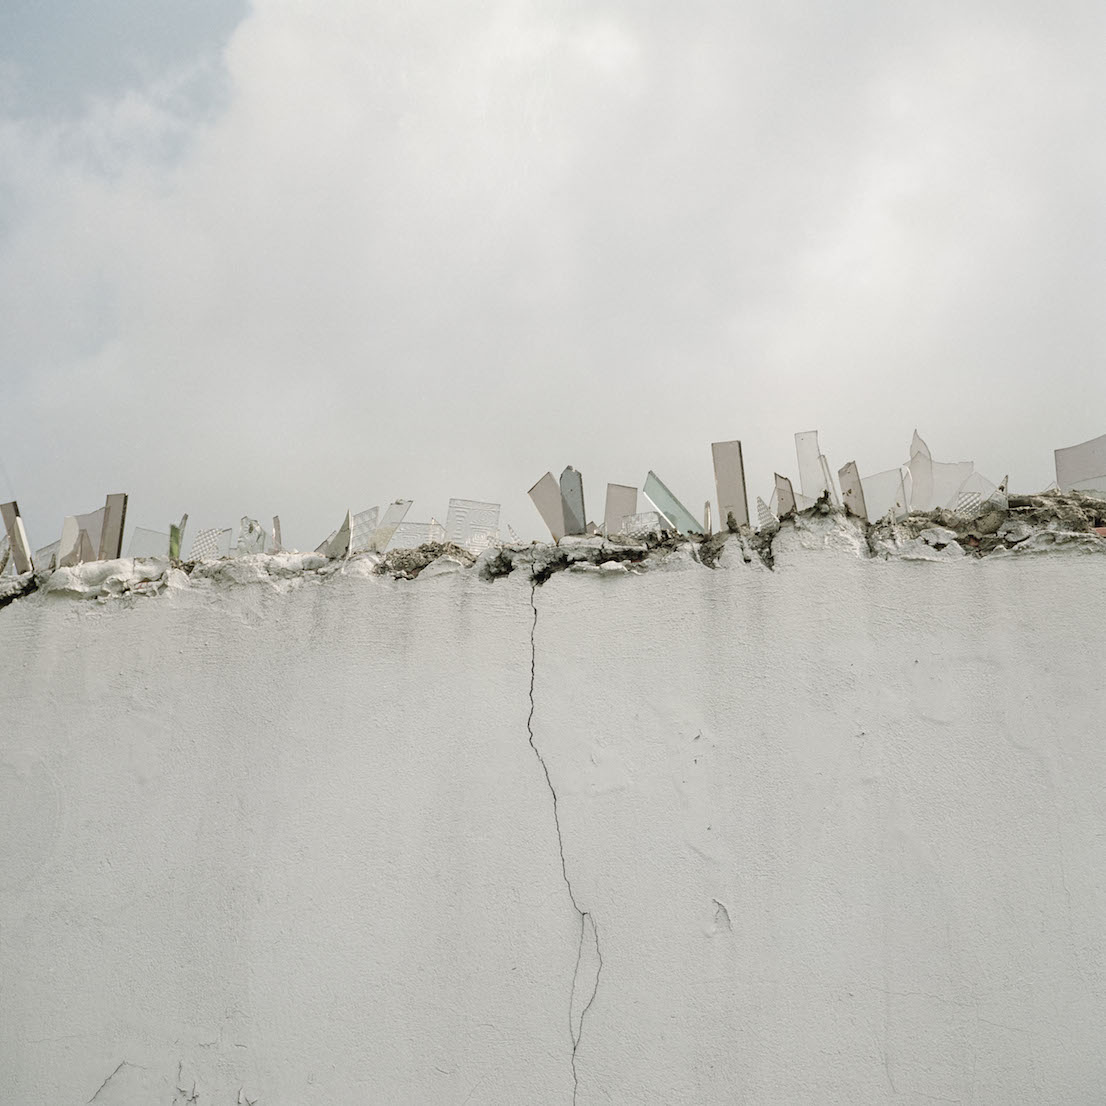 Alec Soth, Untitled 25, Bogotá (broken glass wall), 2003.